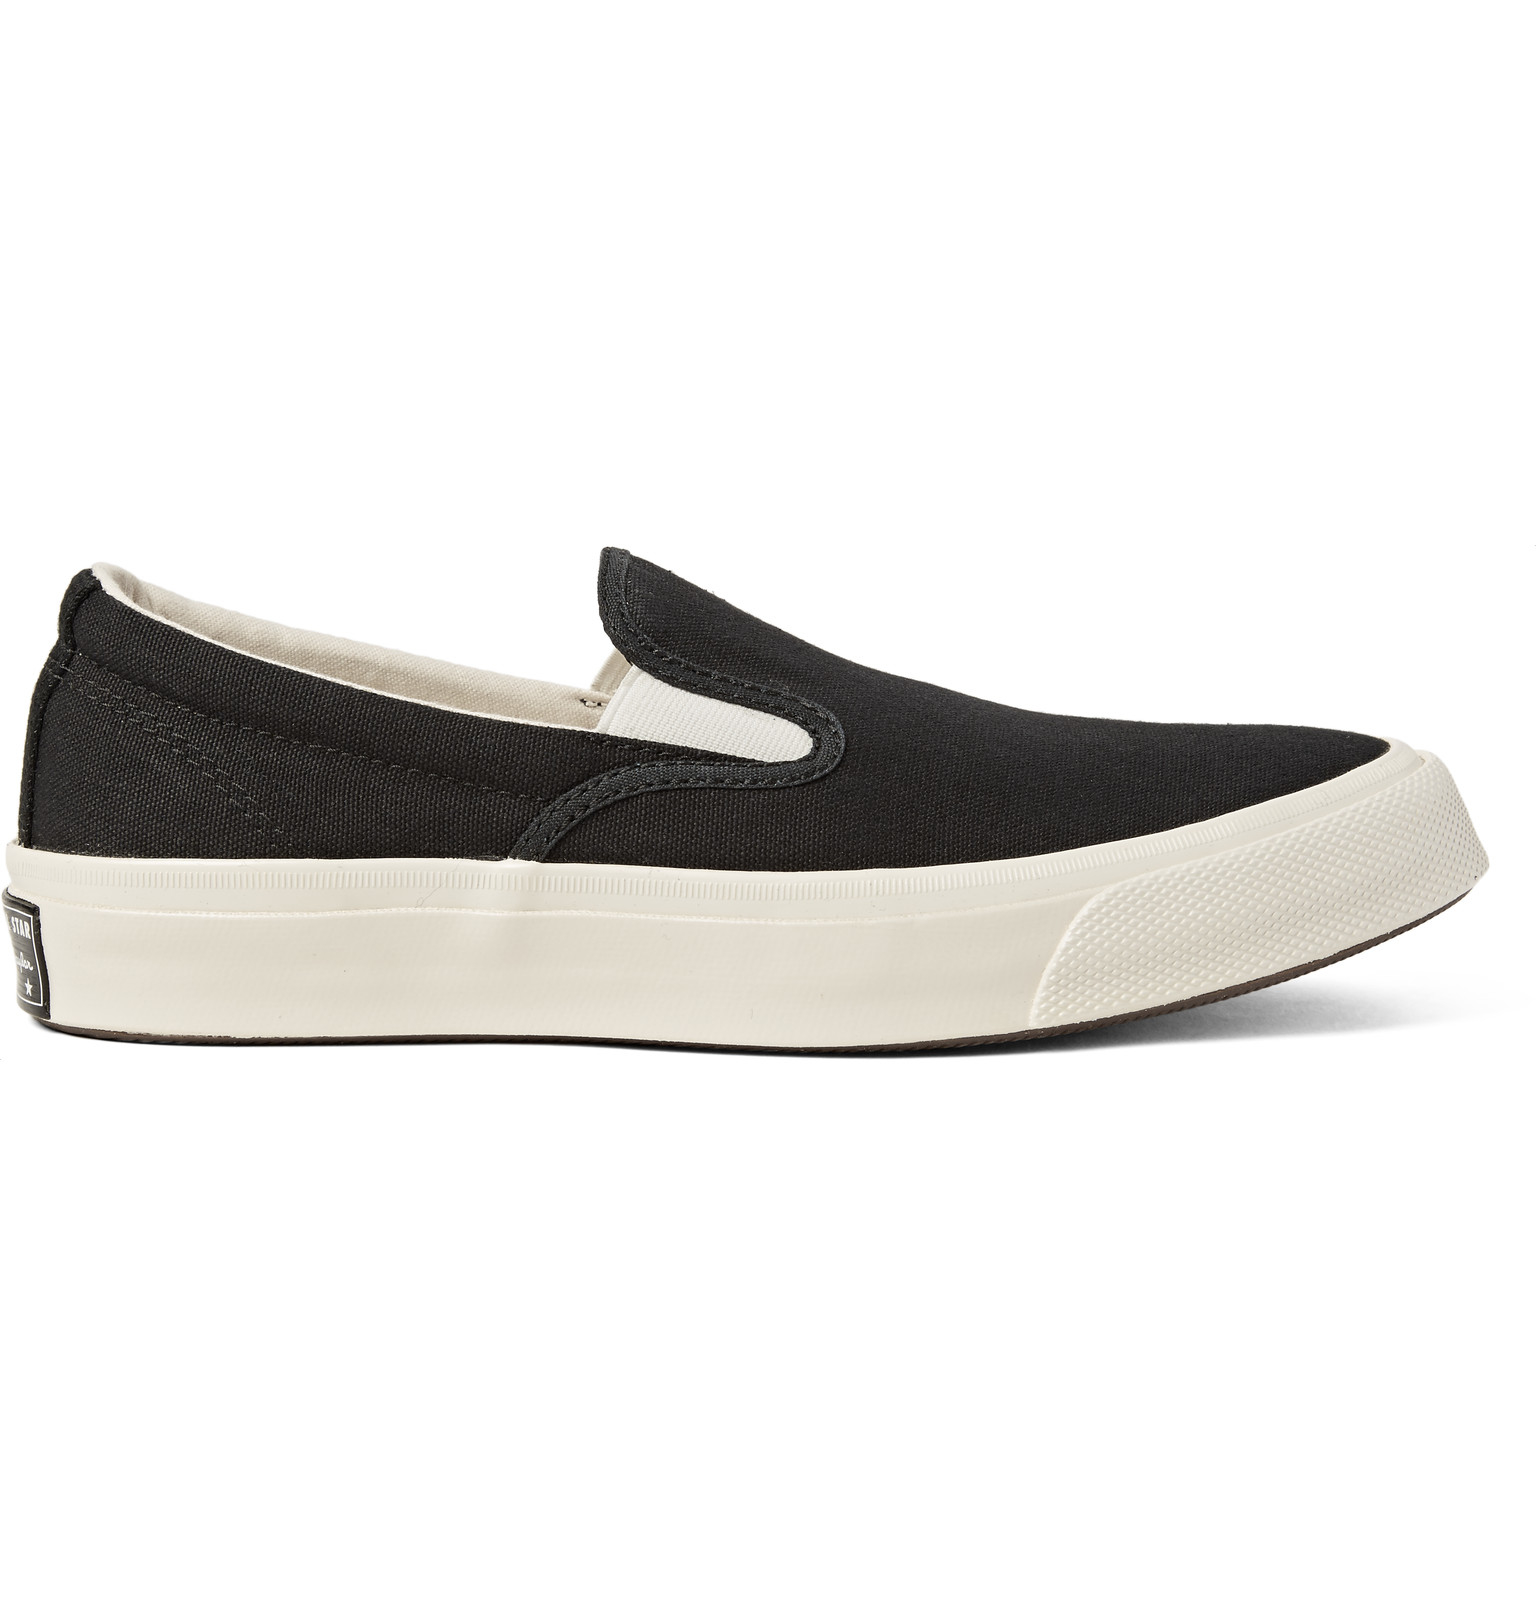 1840b5d88df Converse Deck Star  67 Canvas Slip-on Sneakers in Black for Men - Lyst